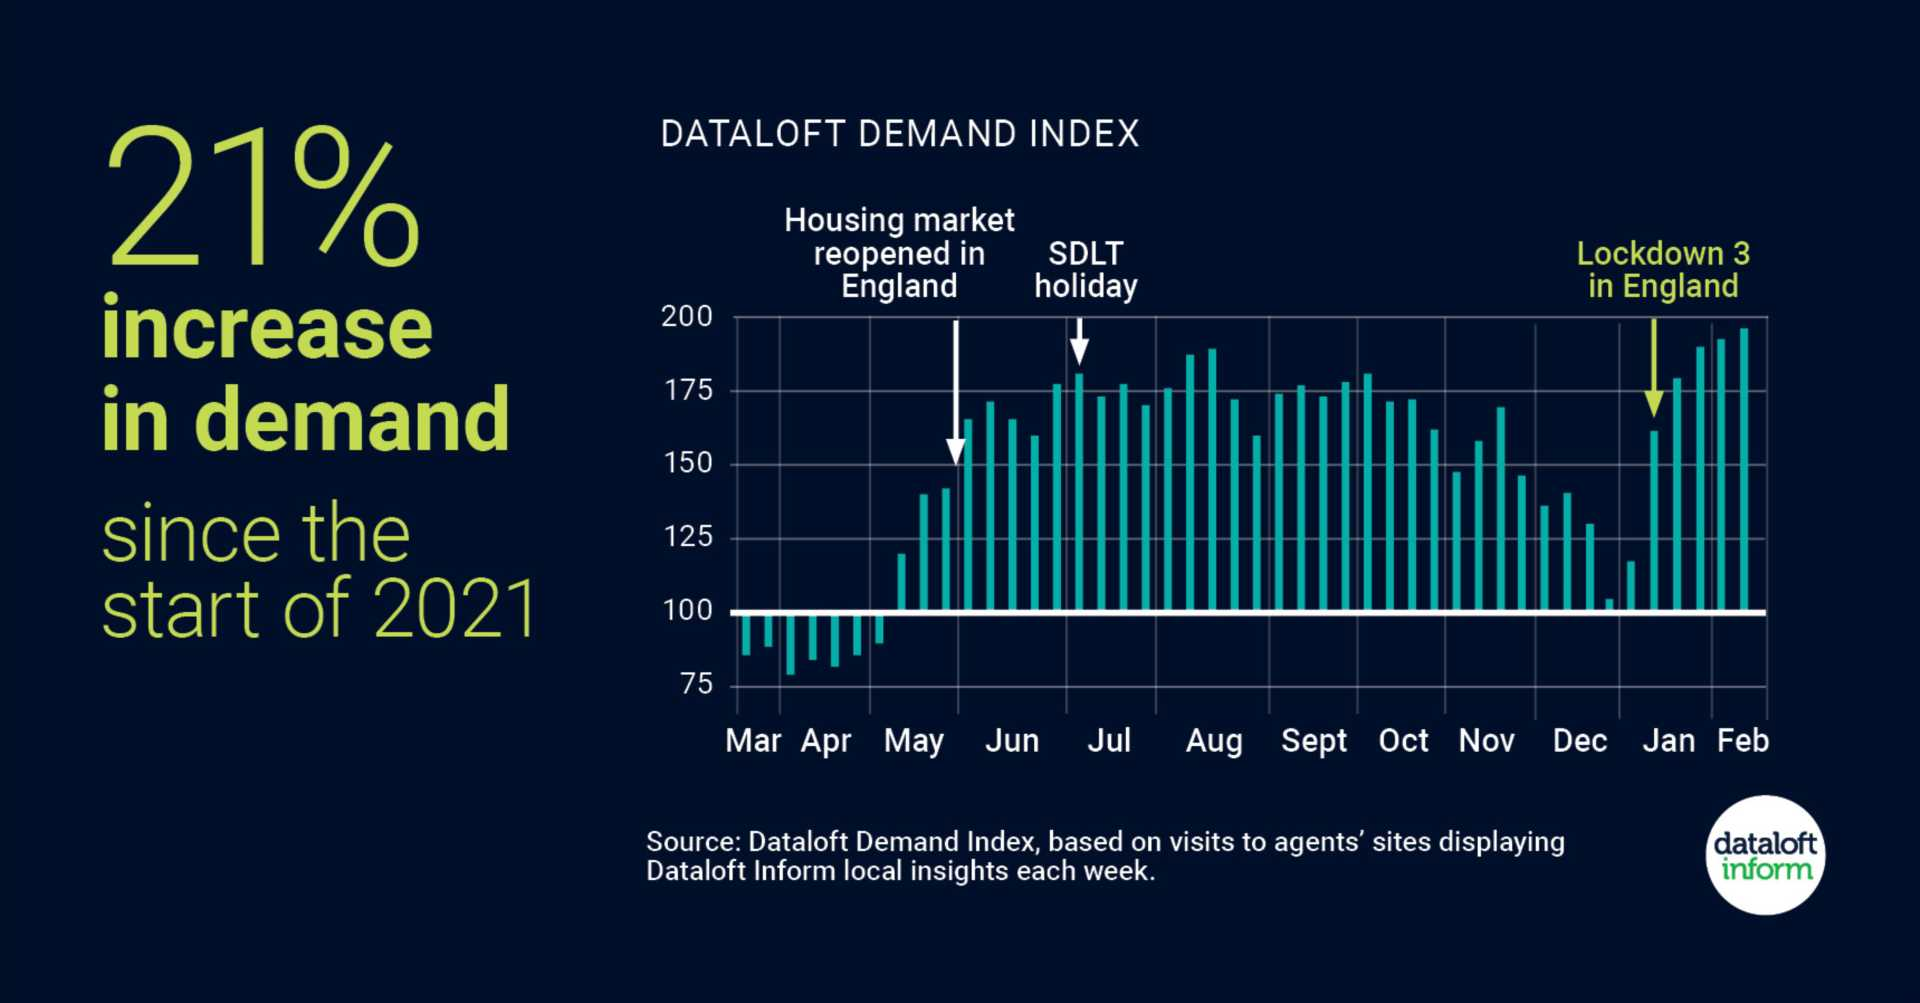 Increase in housing market demand since the start of 2021